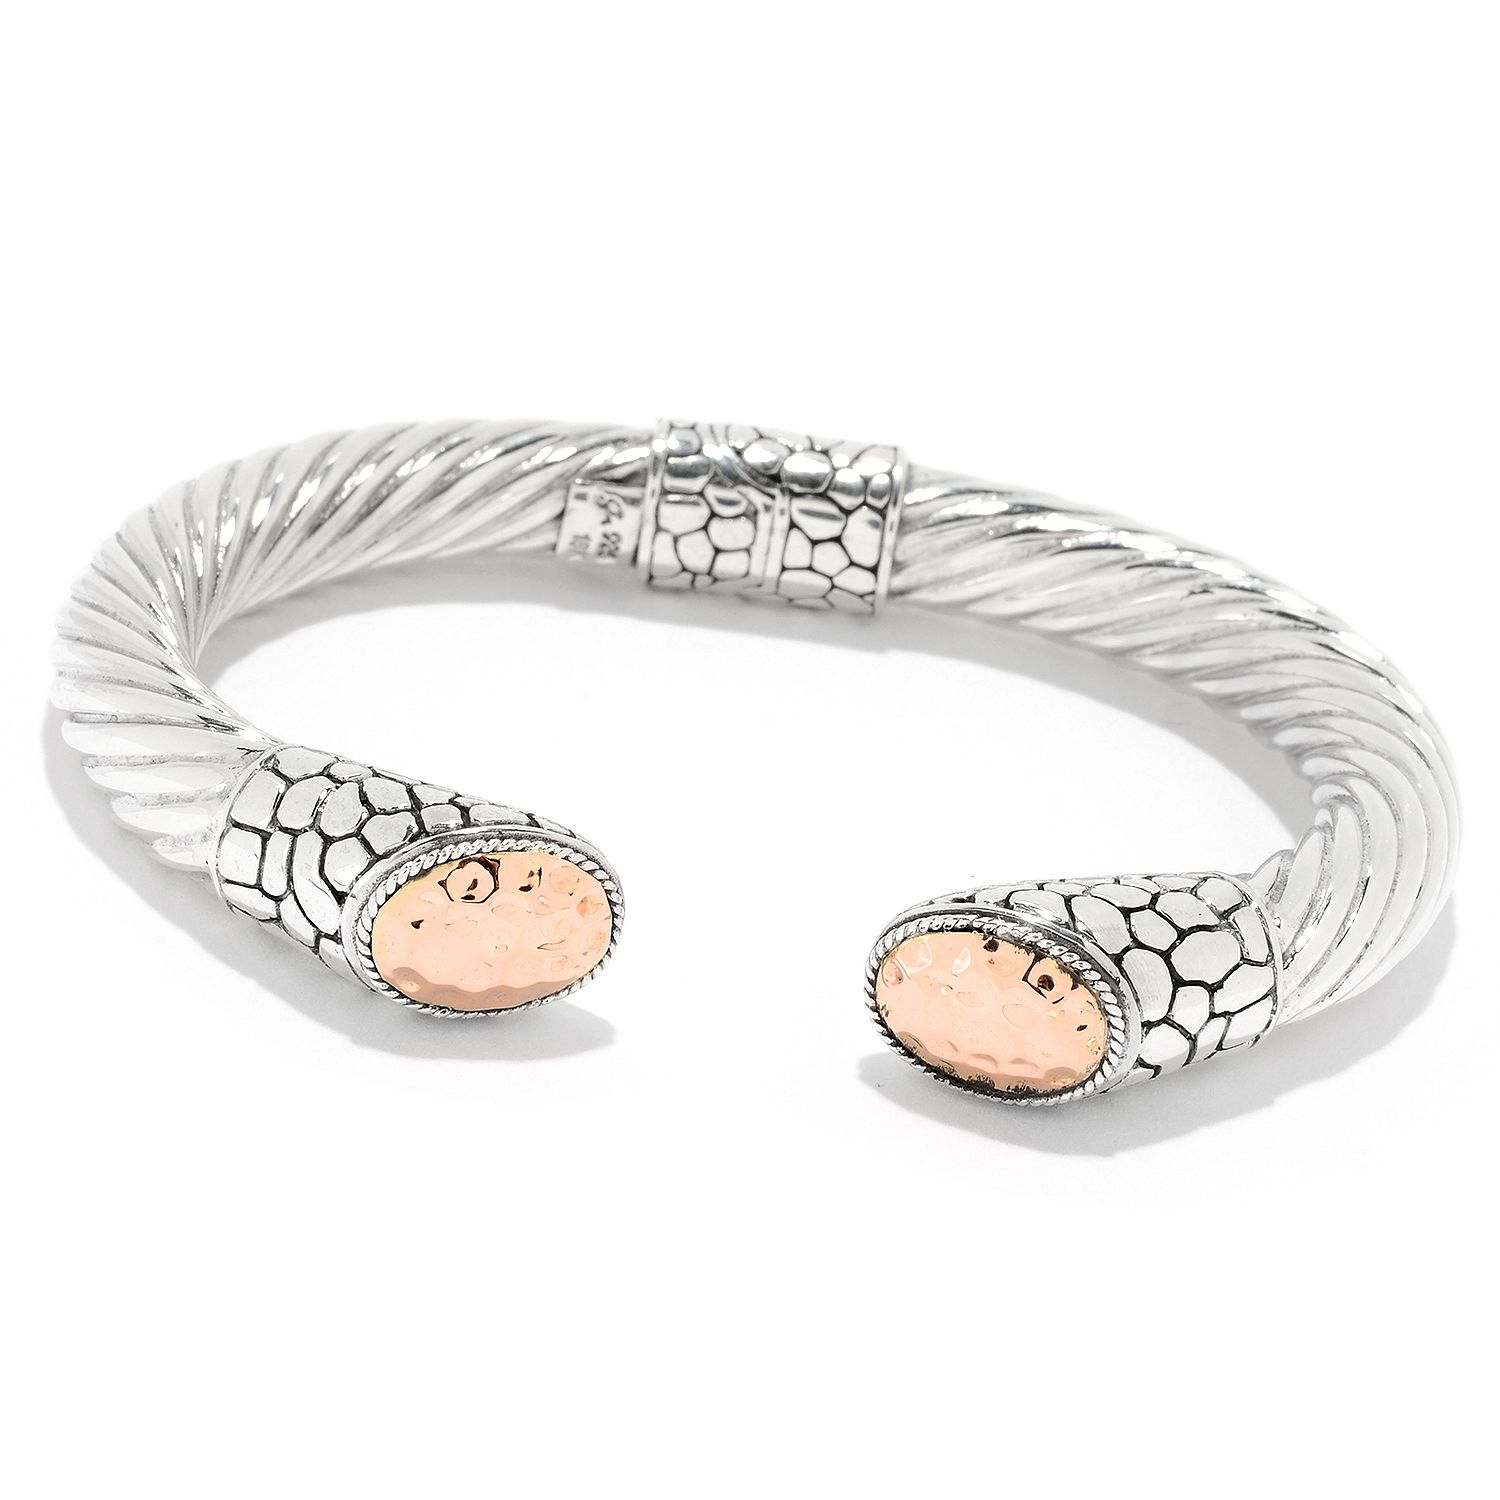 155-577- Artisan Silver by Samuel B. Choice of Size 18K Gold Accented Hinged Cable Bangle Bracelet